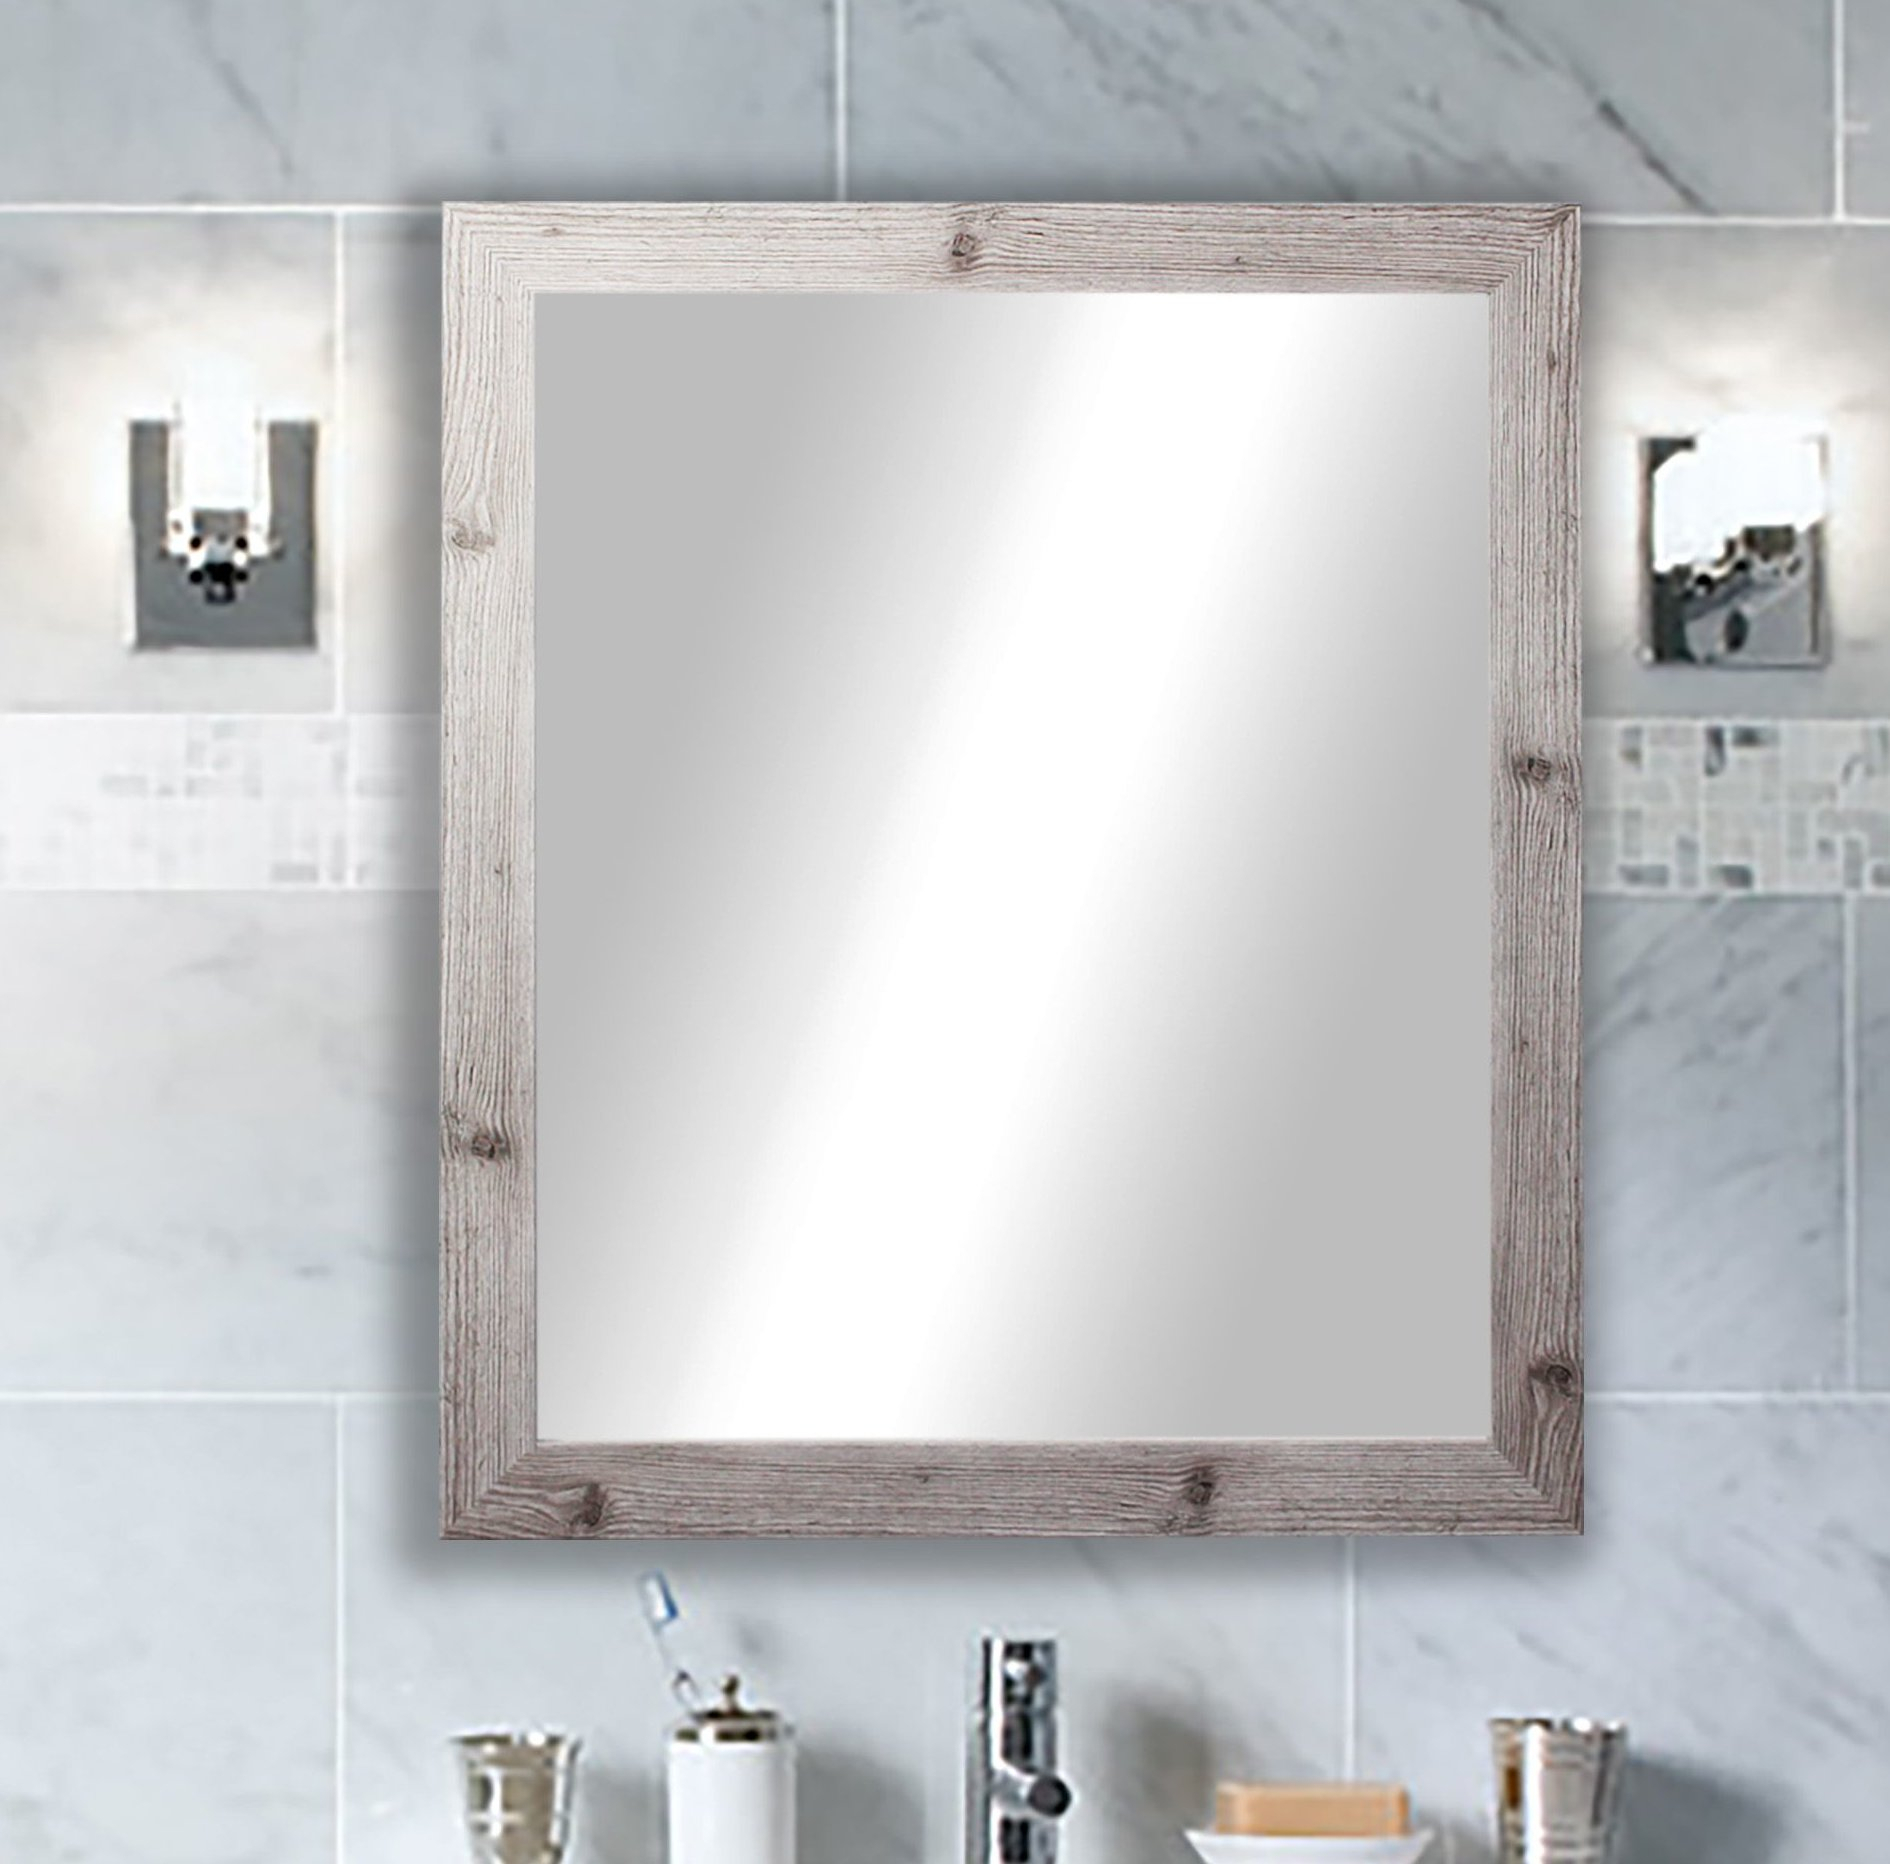 Laurel Foundry Modern Farmhouse Accent Mirror With Regard To Epinal Shabby Elegance Wall Mirrors (View 19 of 30)